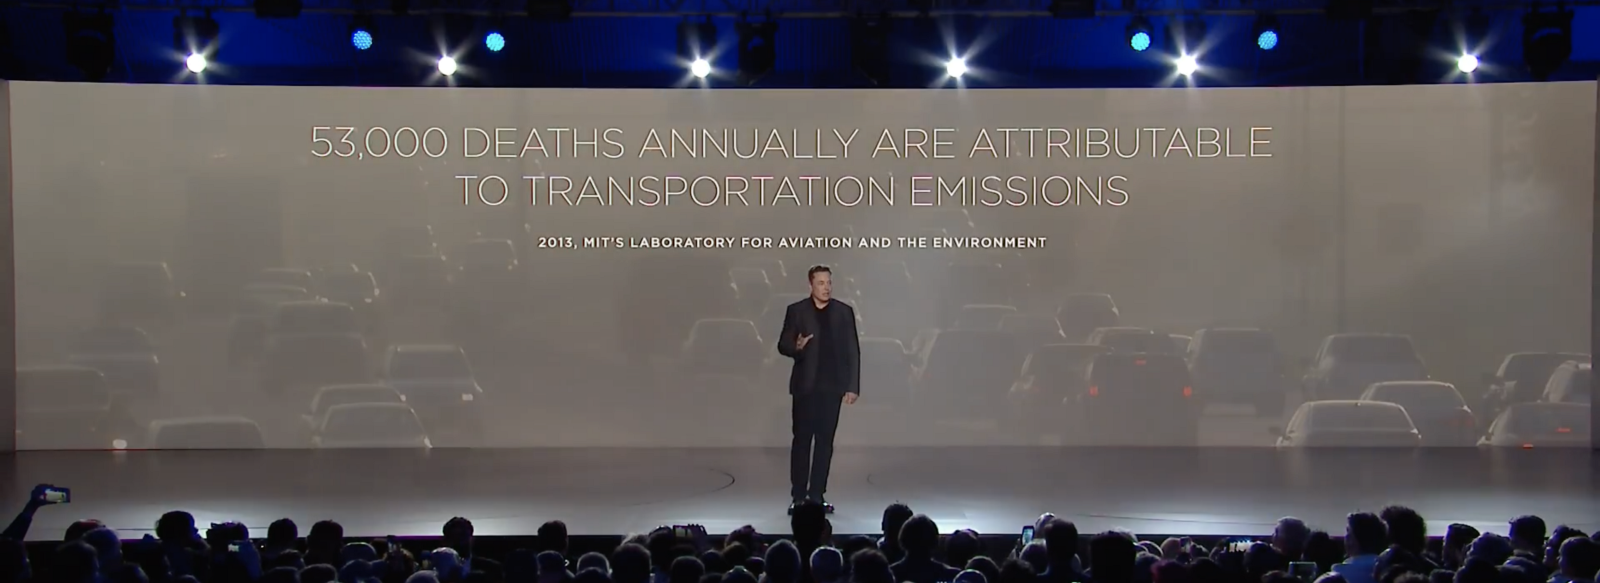 Musk establishes an enemy which his audience can align against: transportation emissions